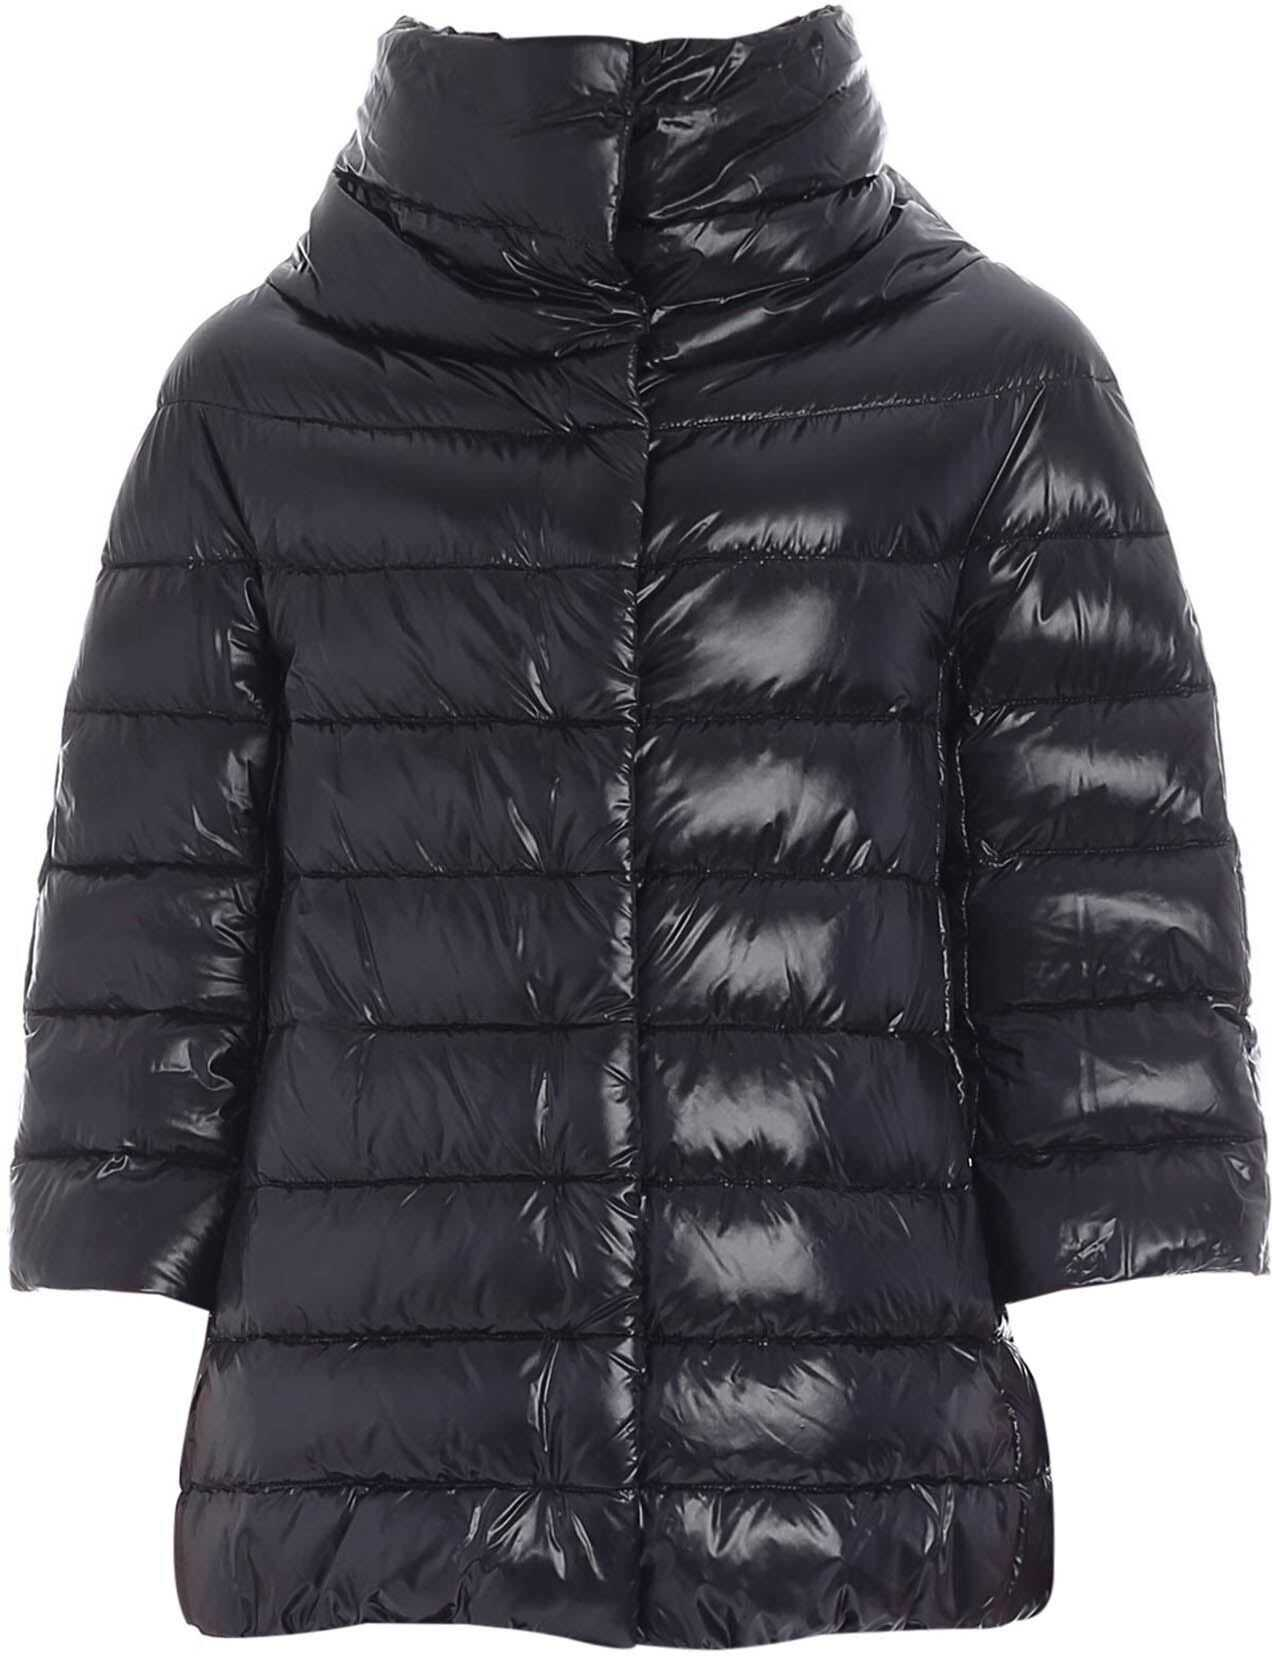 Herno Aminta Iconic Down Jacket In Black Black